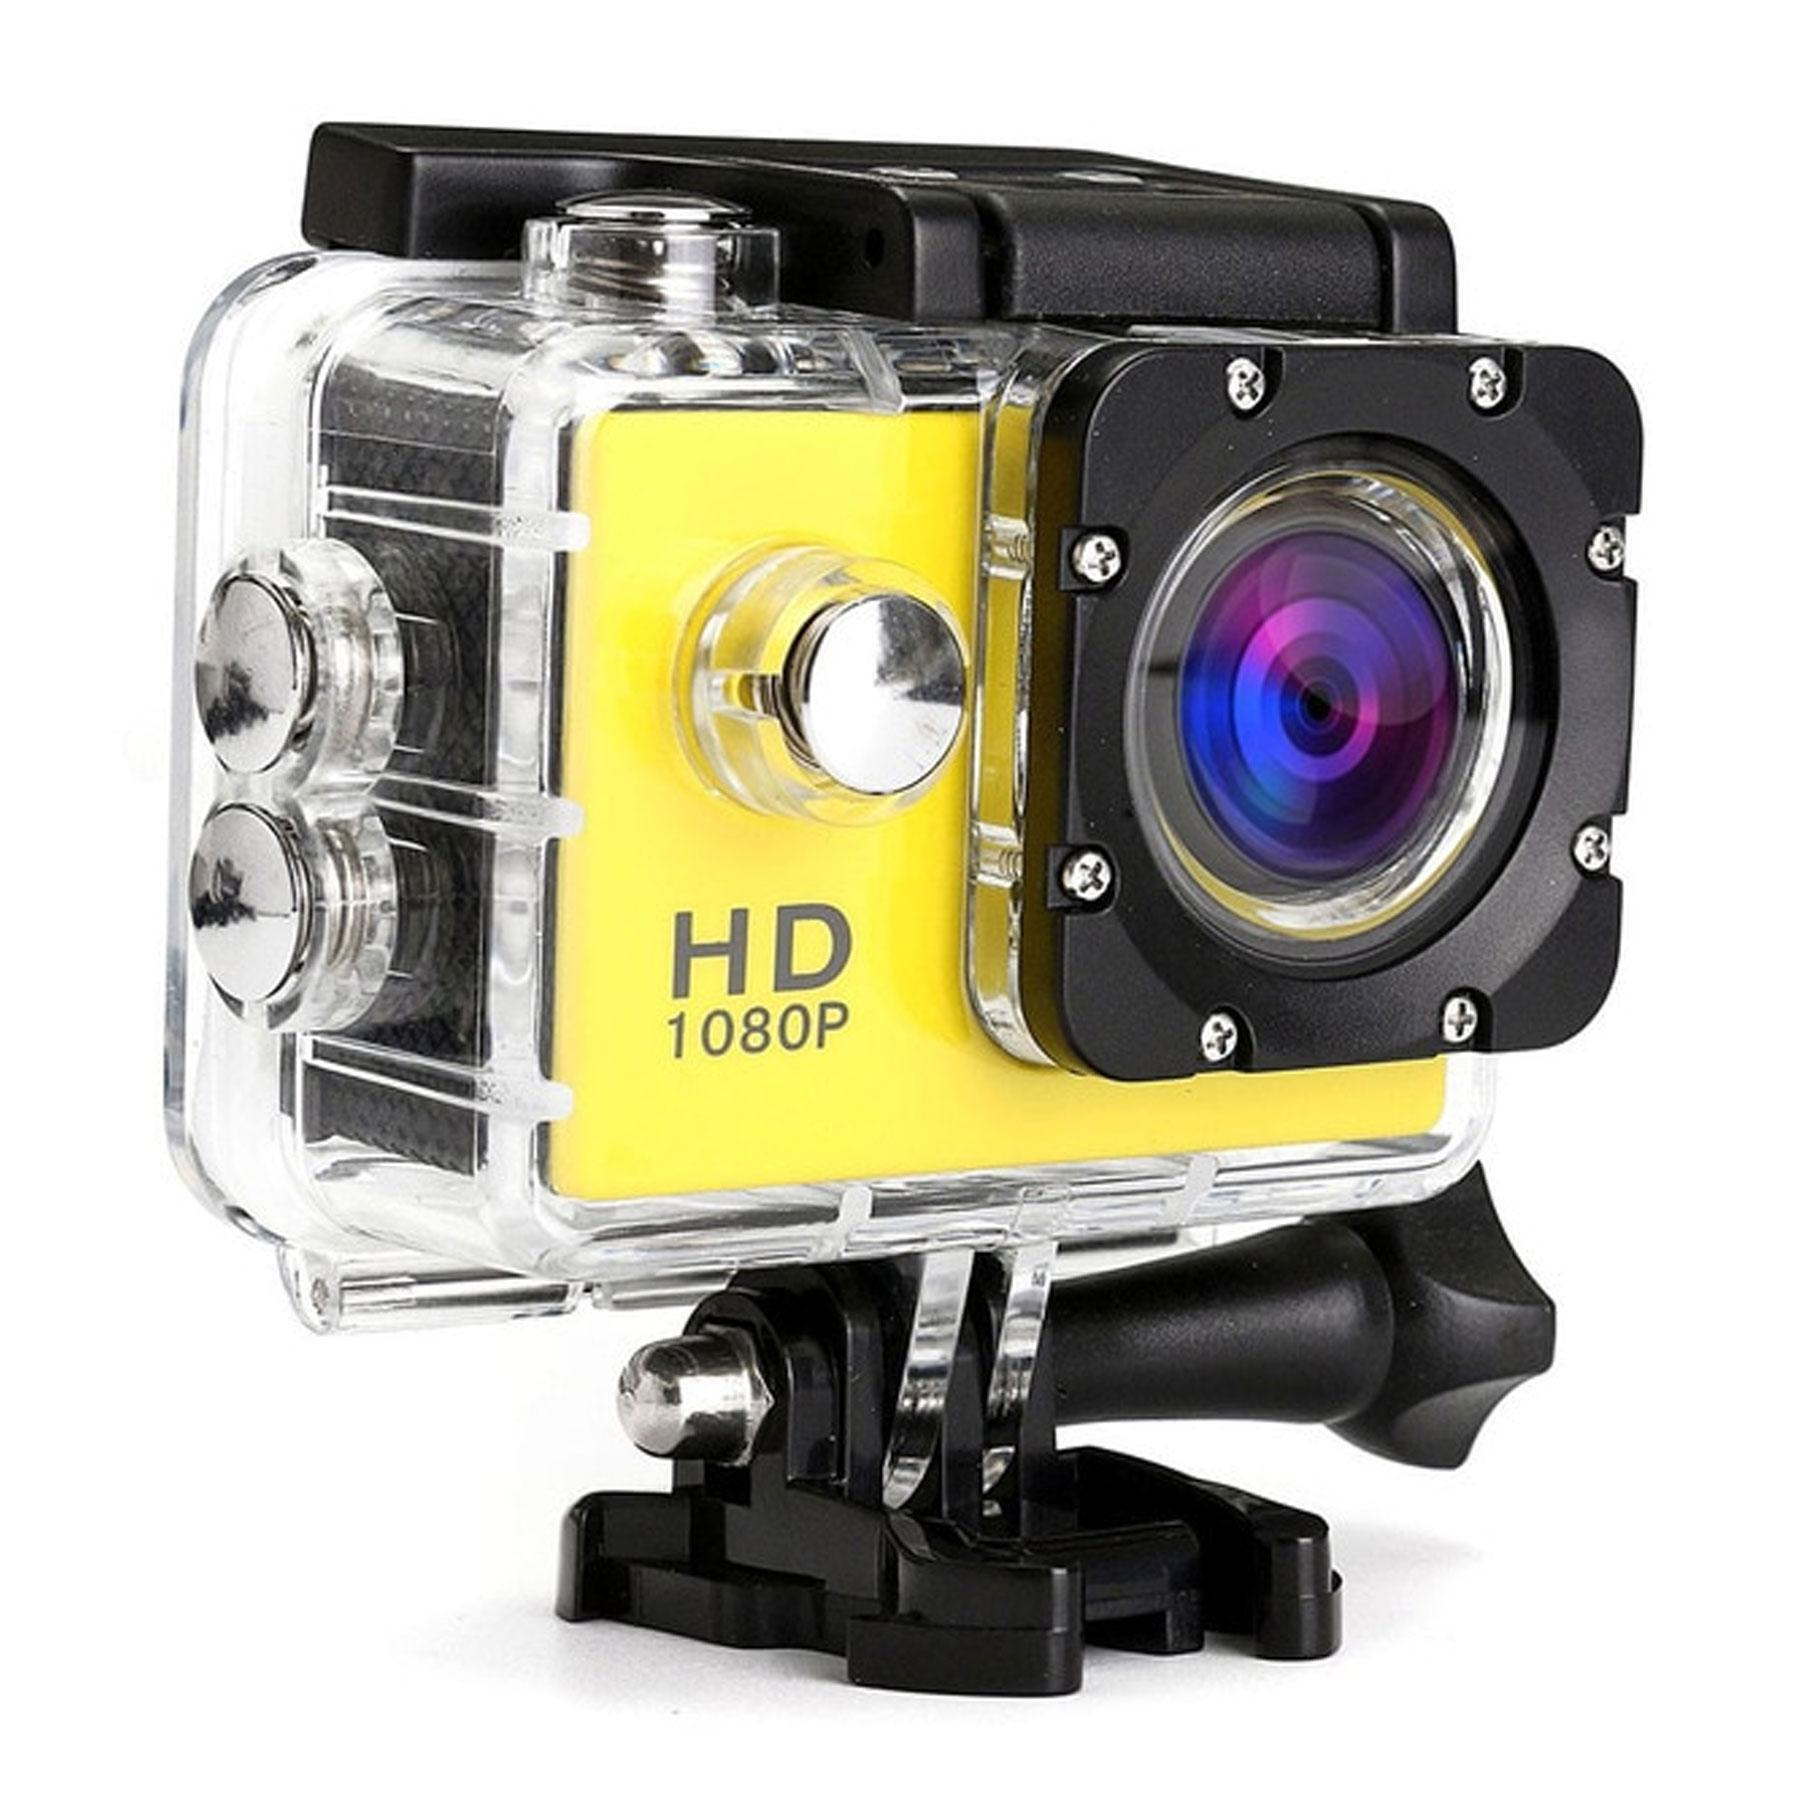 eb517a7a8 A7 sports camera water proof waterproof action camera cam